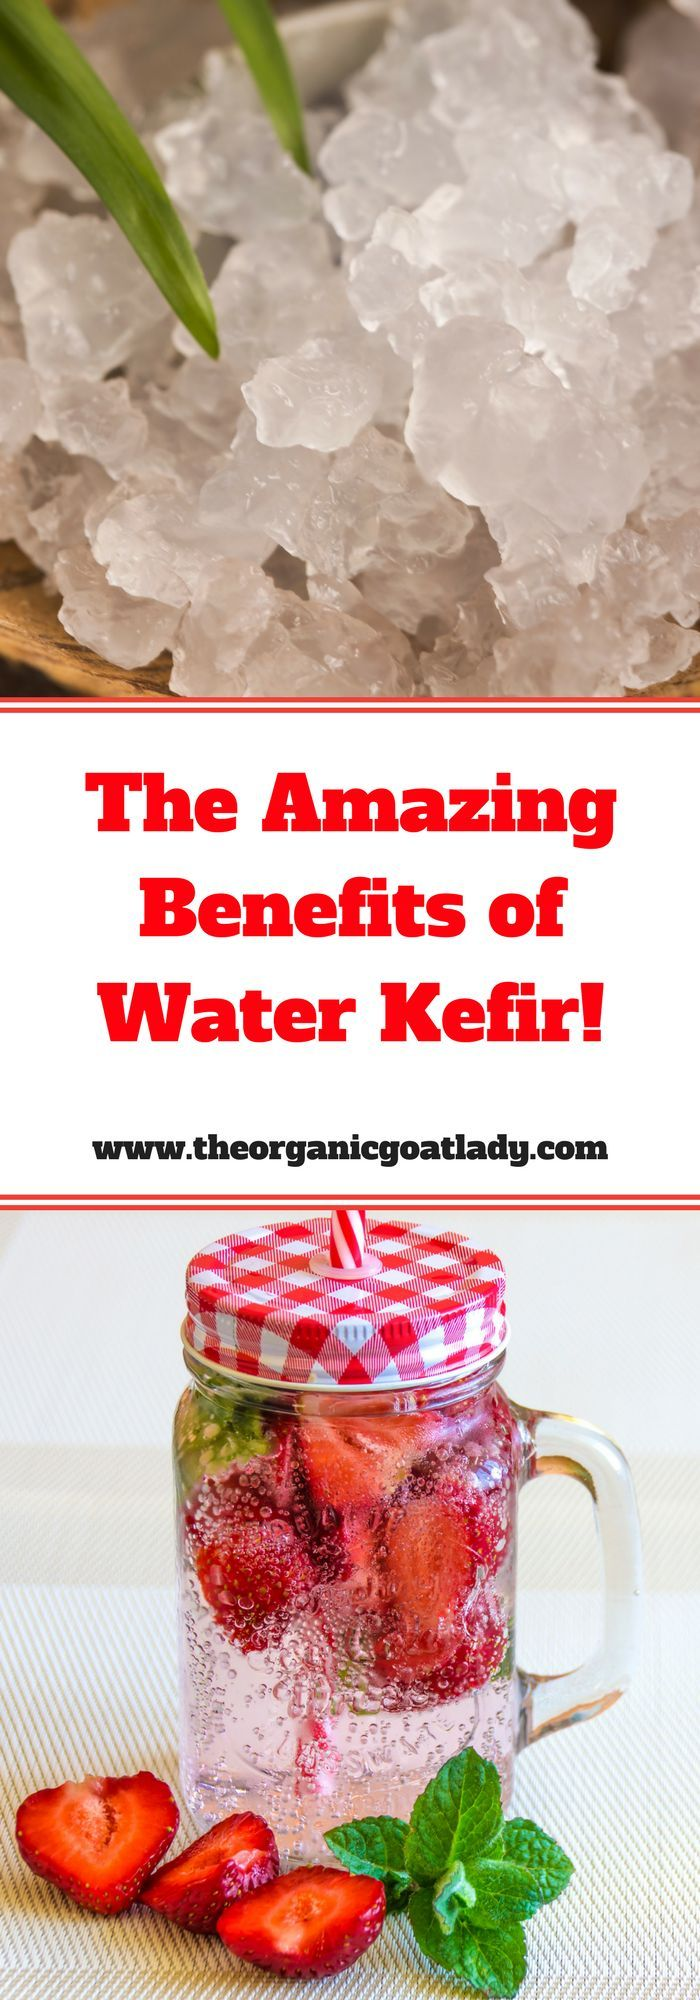 Water Kefir: The Probiotic Beverage That Your Kids Will Love! | healthy kids | fermentation